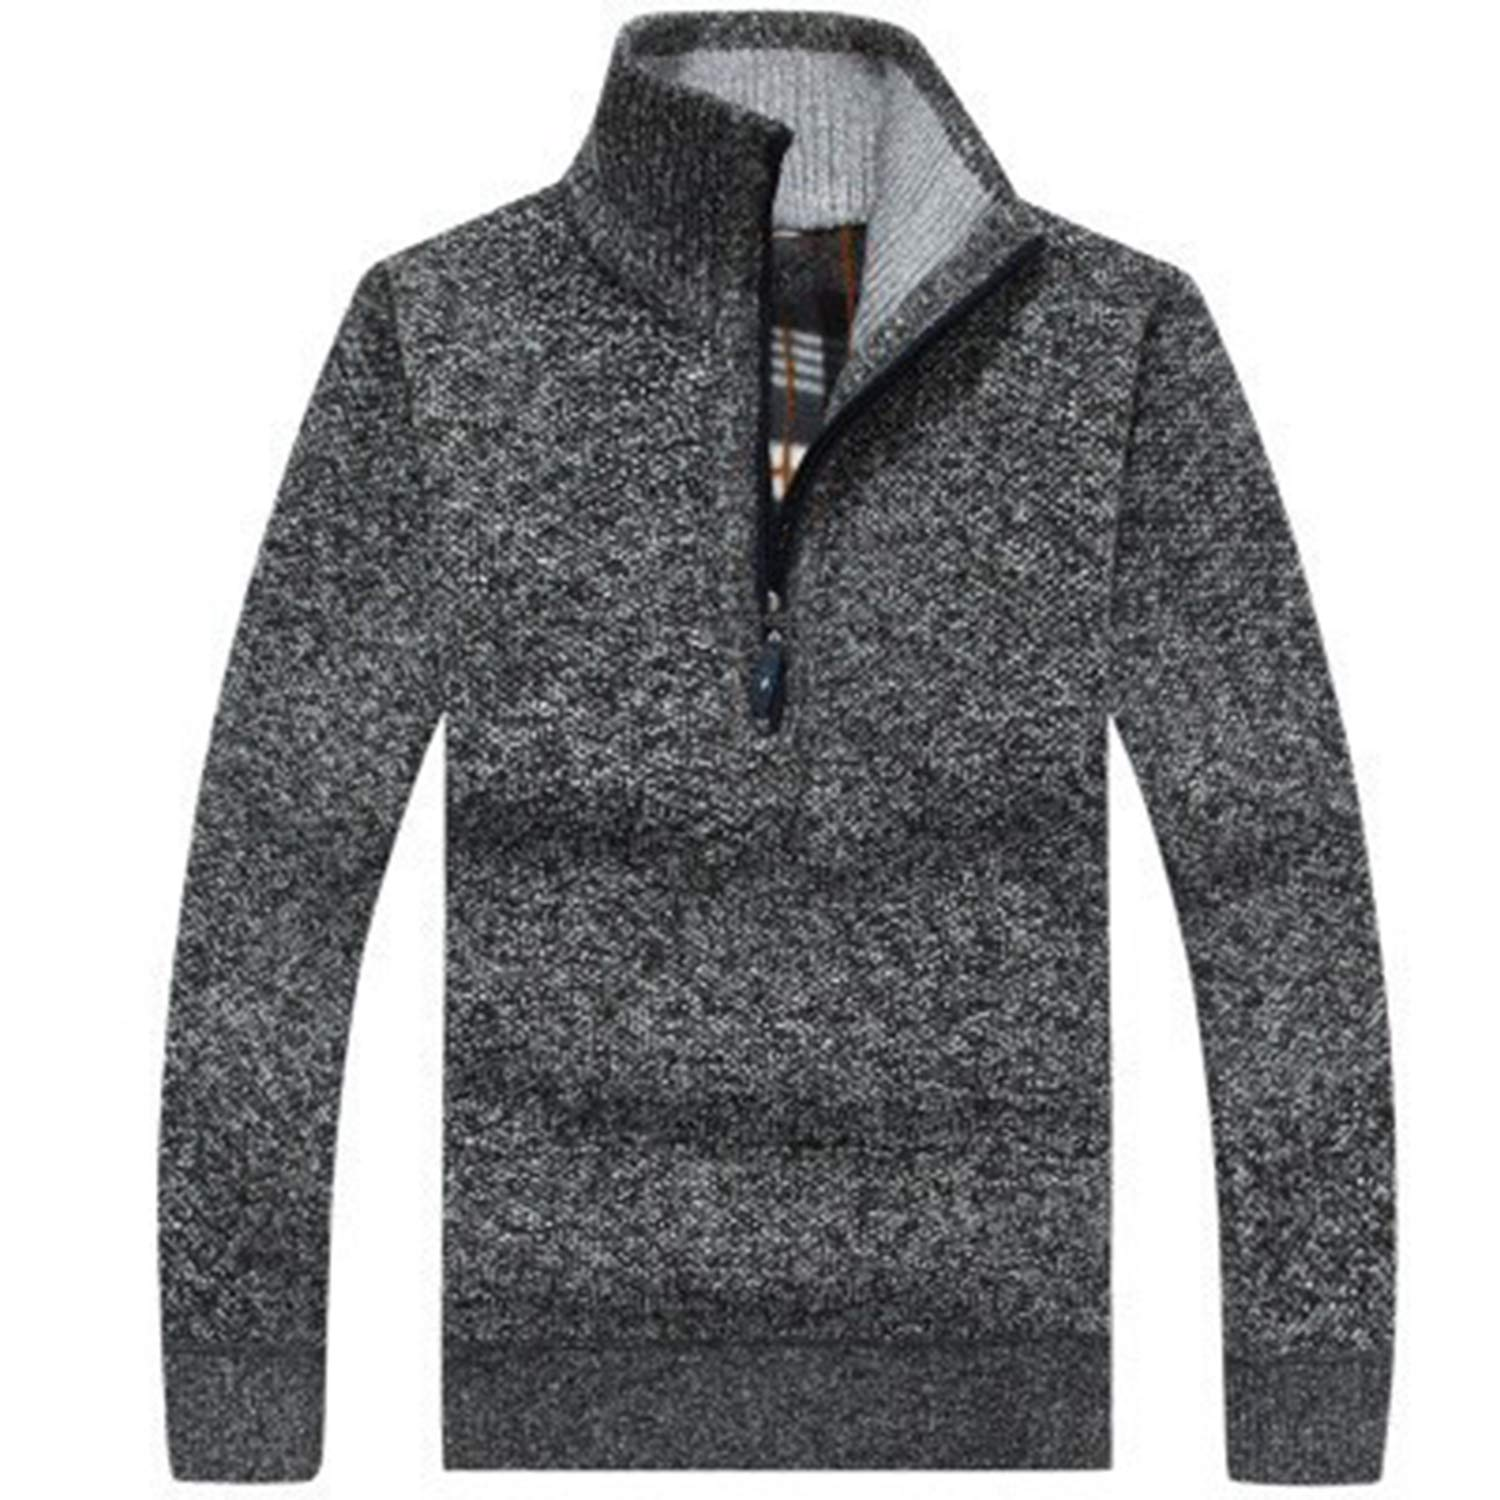 Mens Zipper Sweater Pullovers Slim Fit Thick Sweaters Male Knitted Pullover